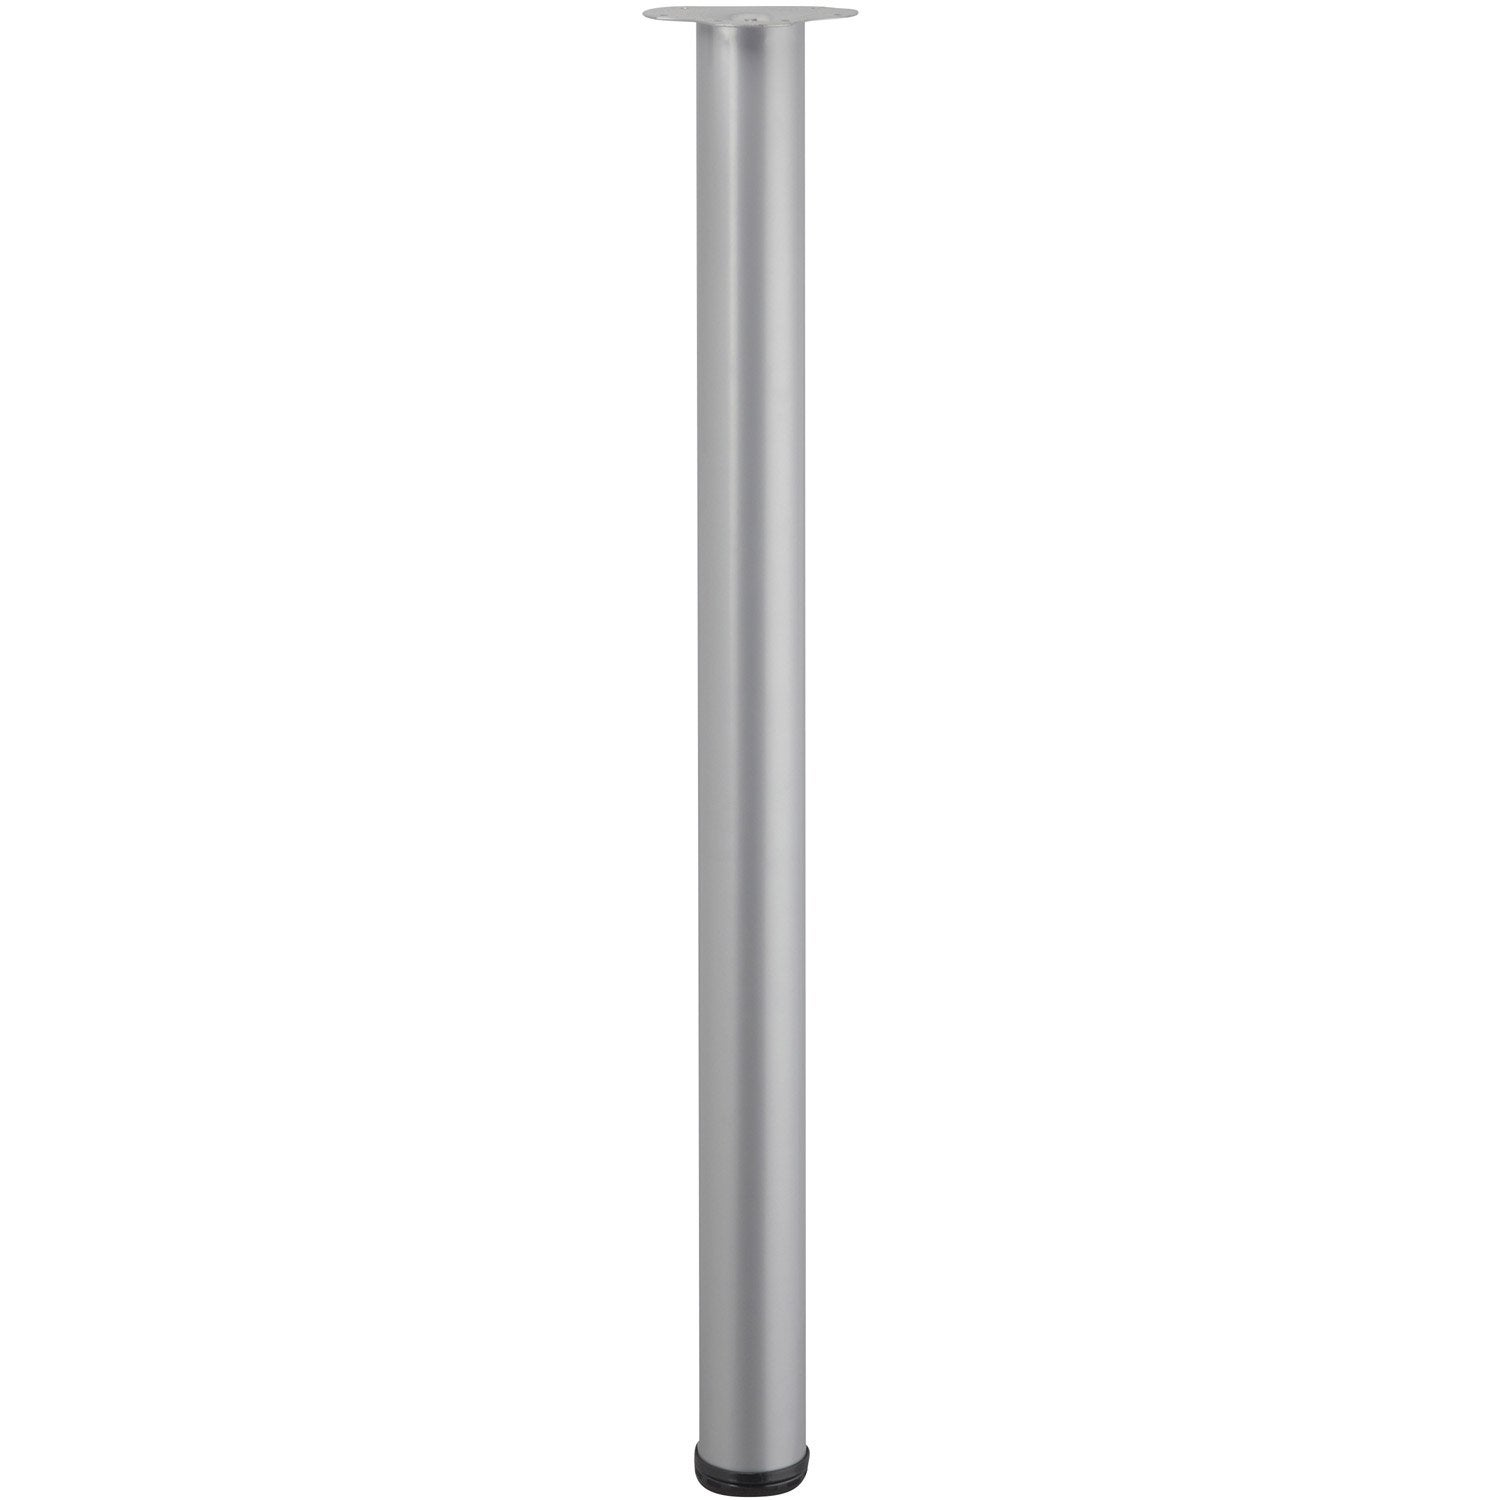 Pied de table cylindrique r glable acier mat gris de 110 113 cm leroy merlin - Pied de table leroy merlin ...